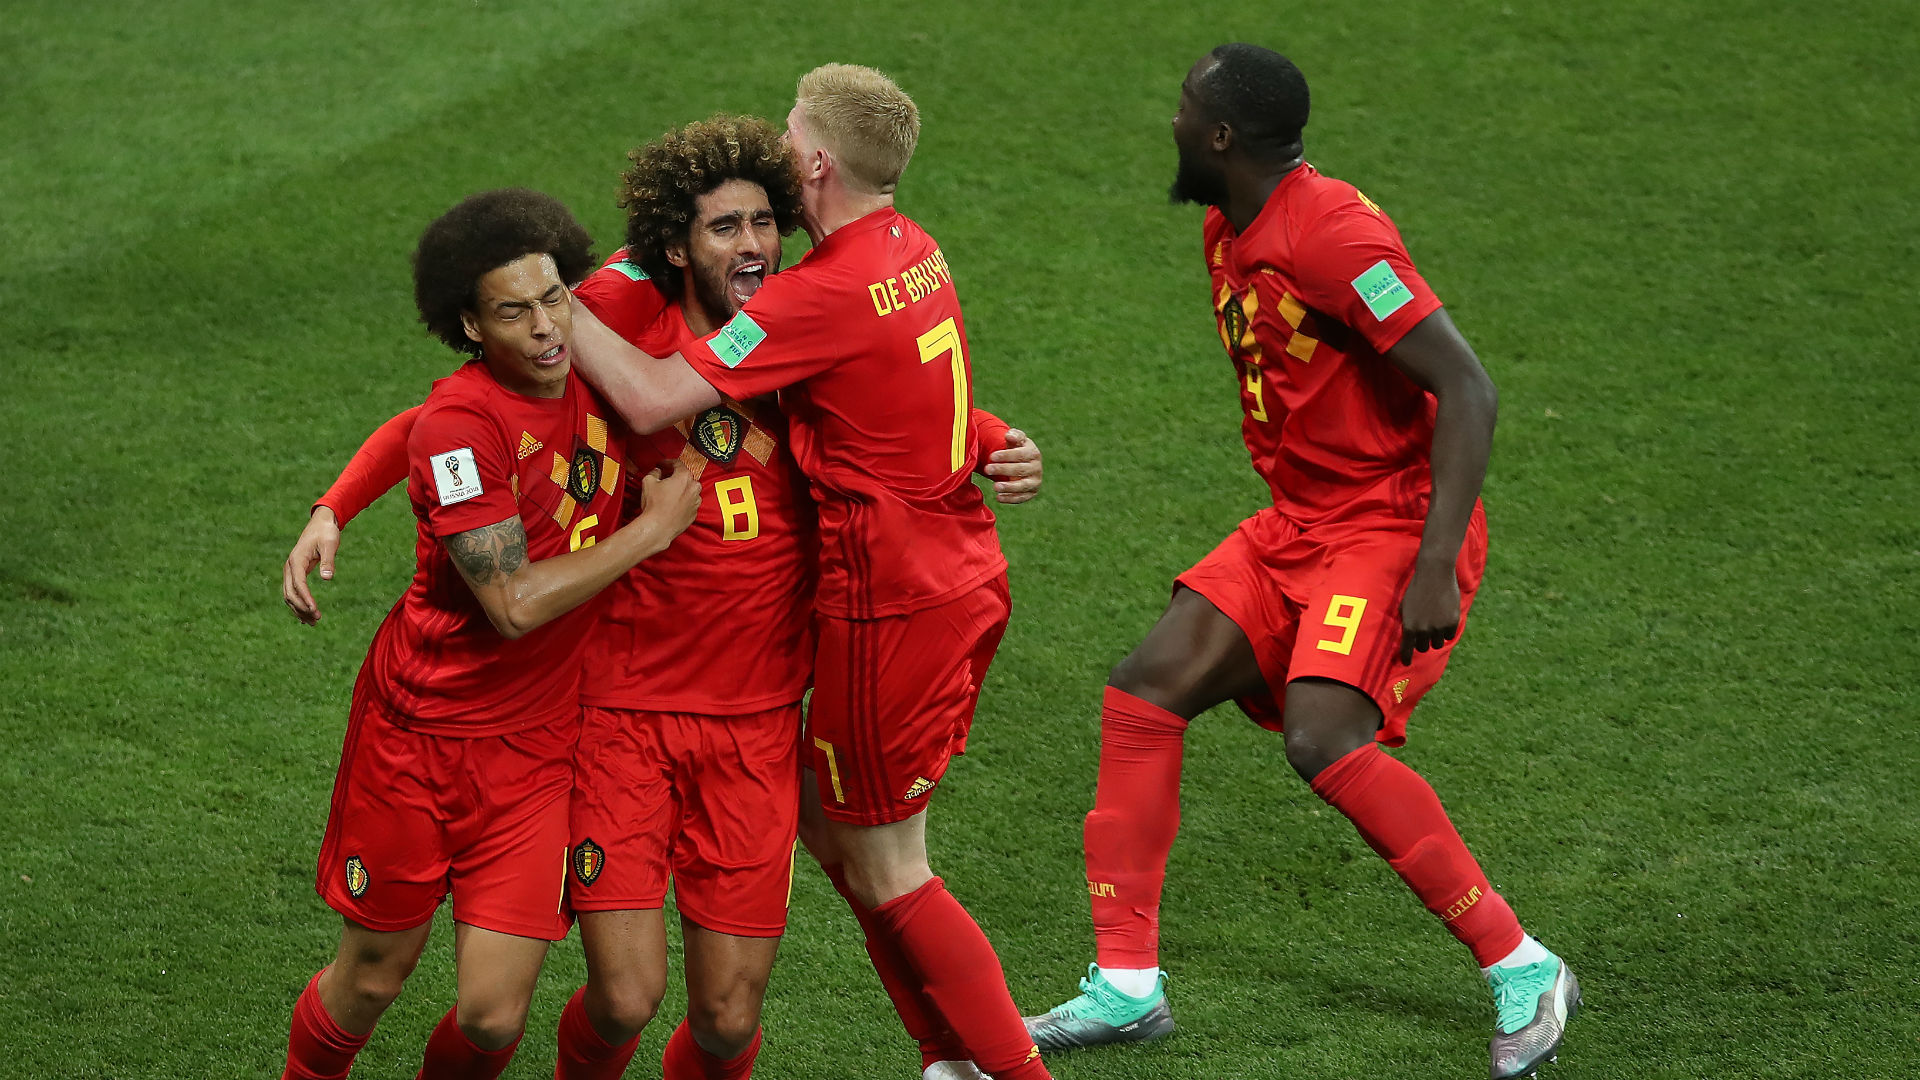 Belgium holds off Brazil's comeback effort to reach World Cup semifinals